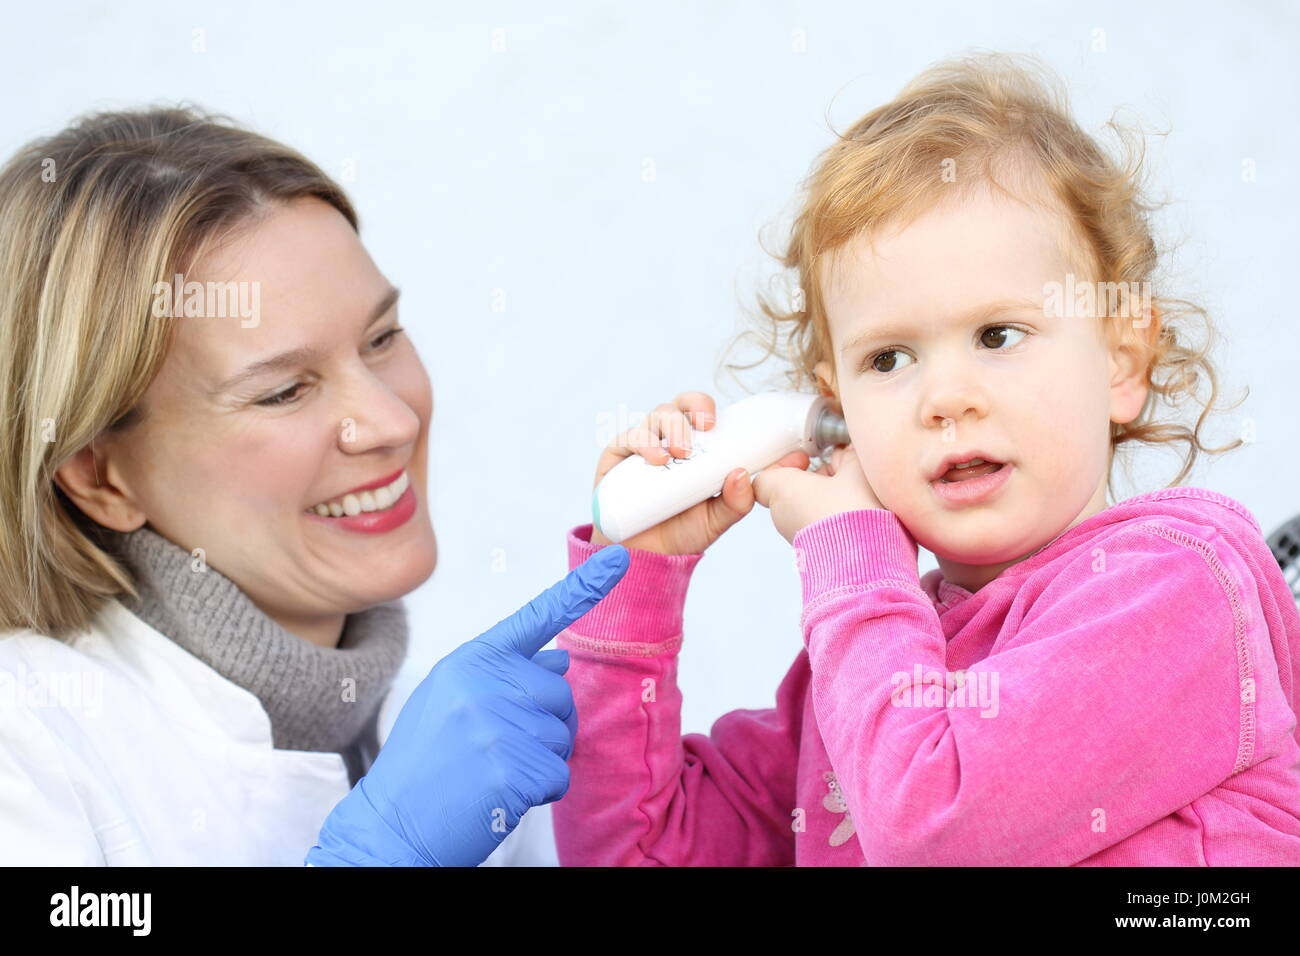 A Doctor measuring with InfraredThermomete temperature  a Child - Stock Image